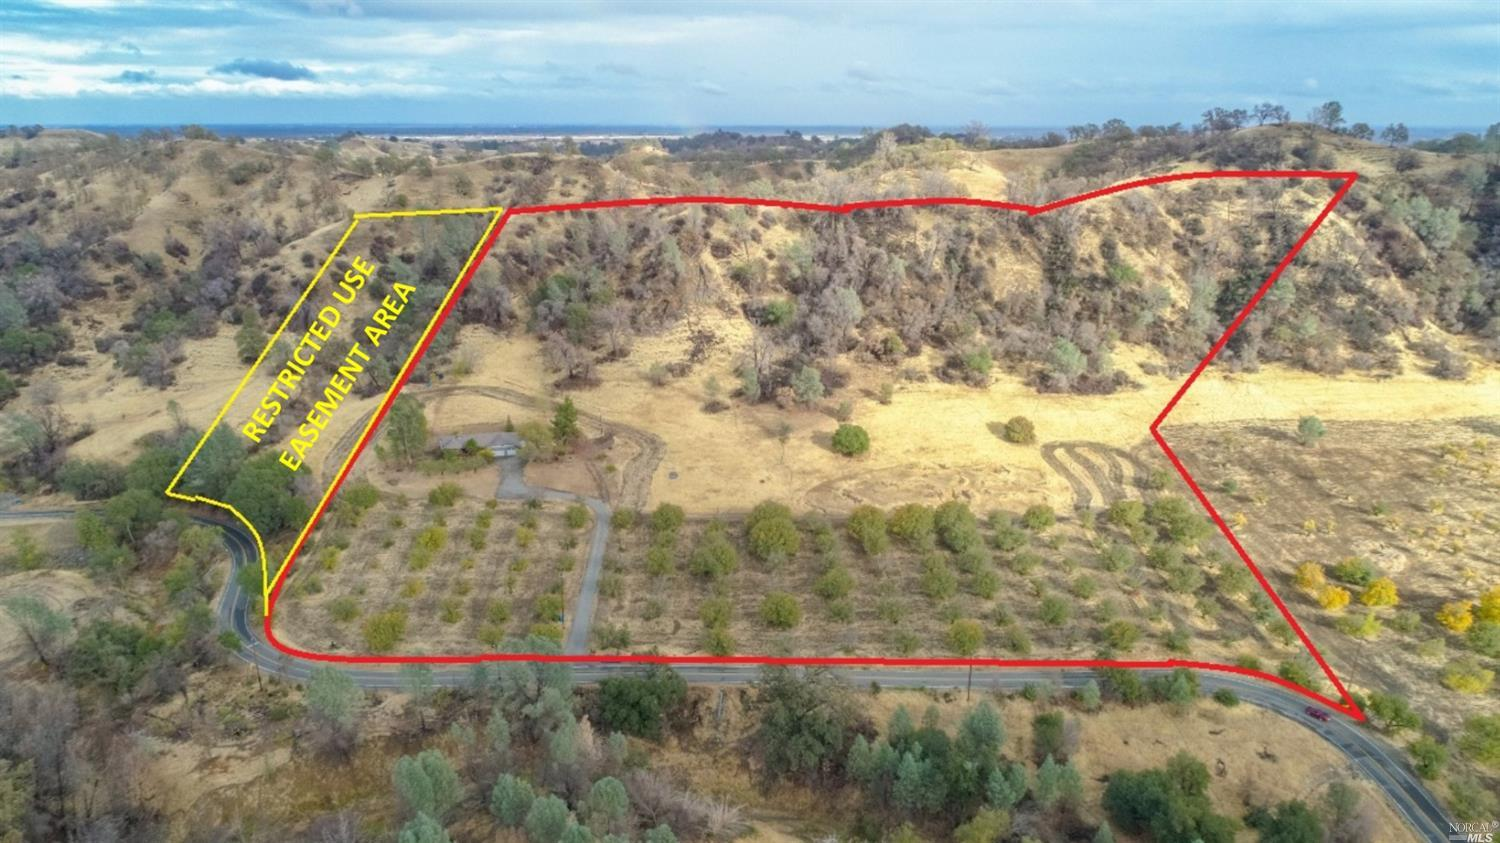 2269 square foot, 4 bedroom, single story home tucked on a peaceful 22 acres. The land has a lot of